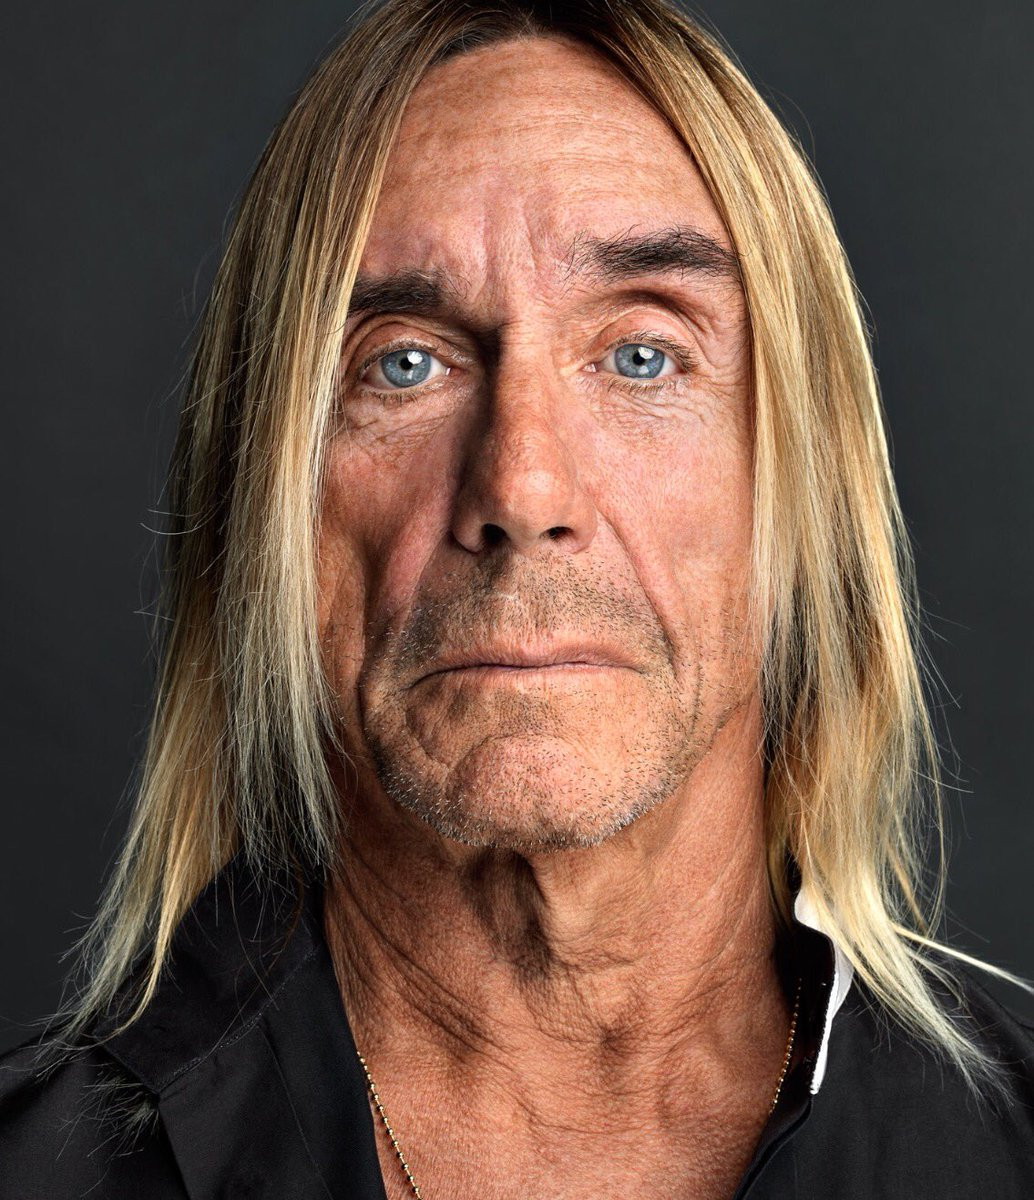 FYI.... @IggyPop is on ACL tonight on @OETAOK https://t.co/h6sPwGbckS